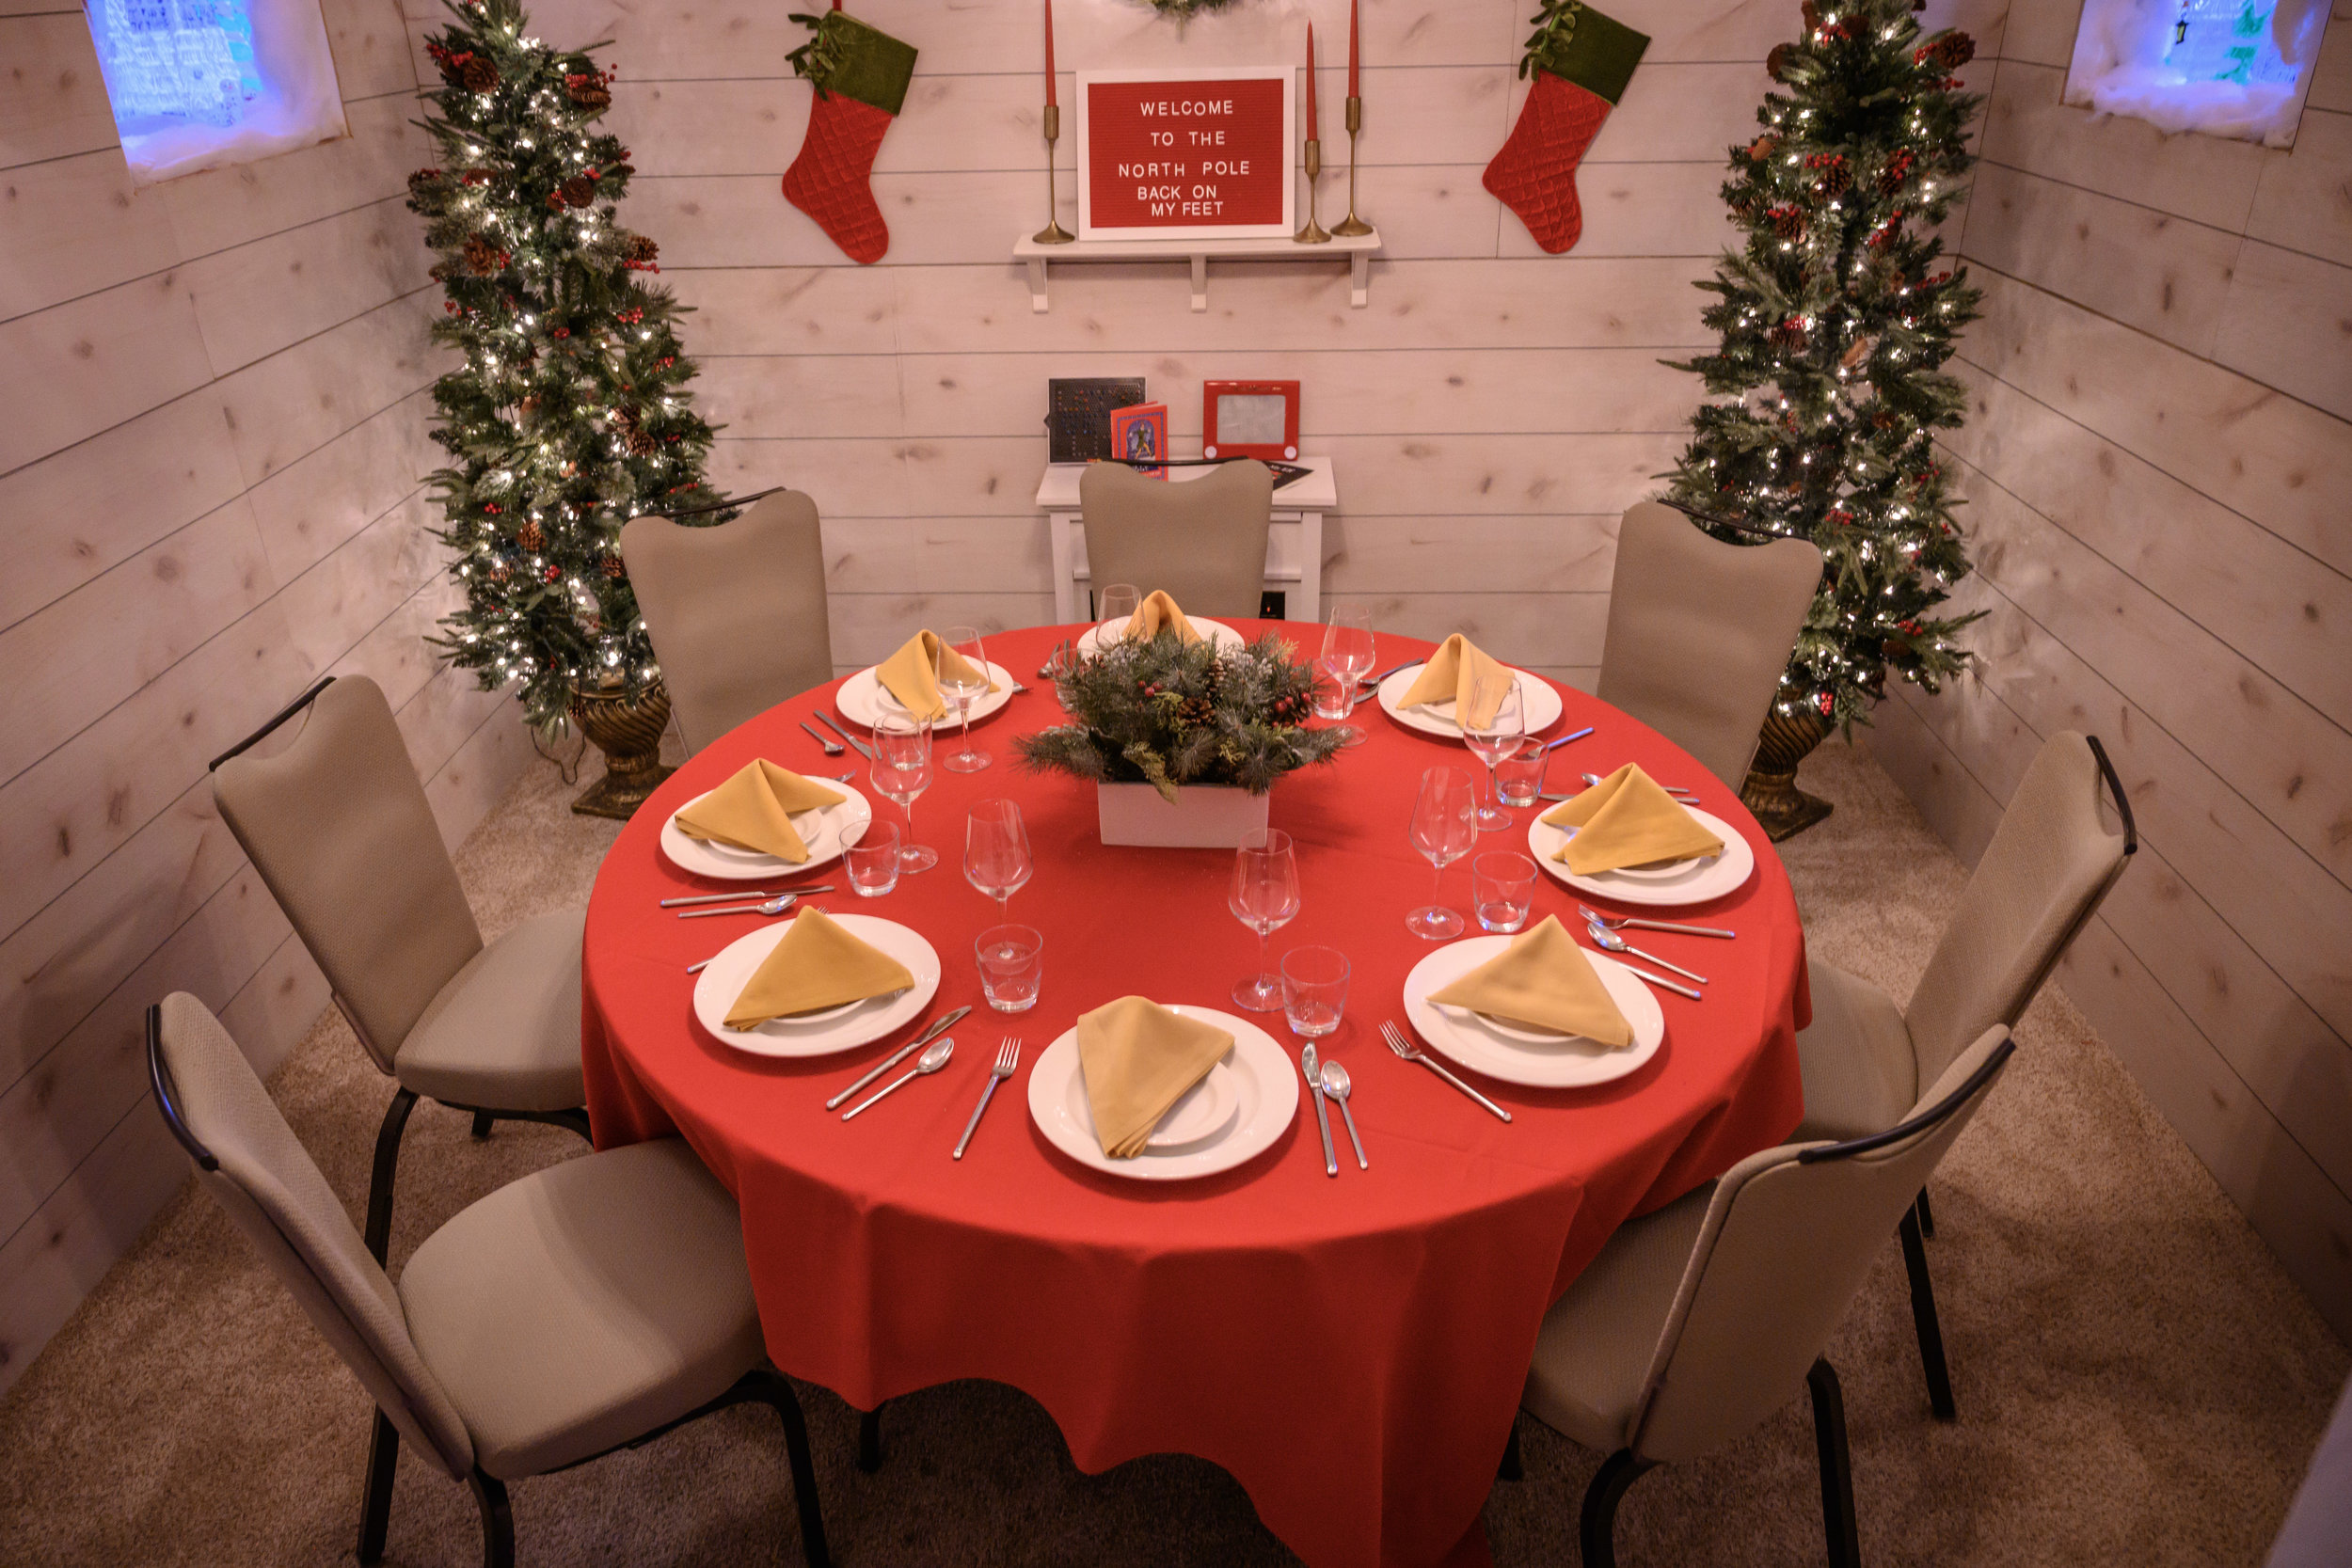 Gingerbread house can accommodate up to 12 guests.